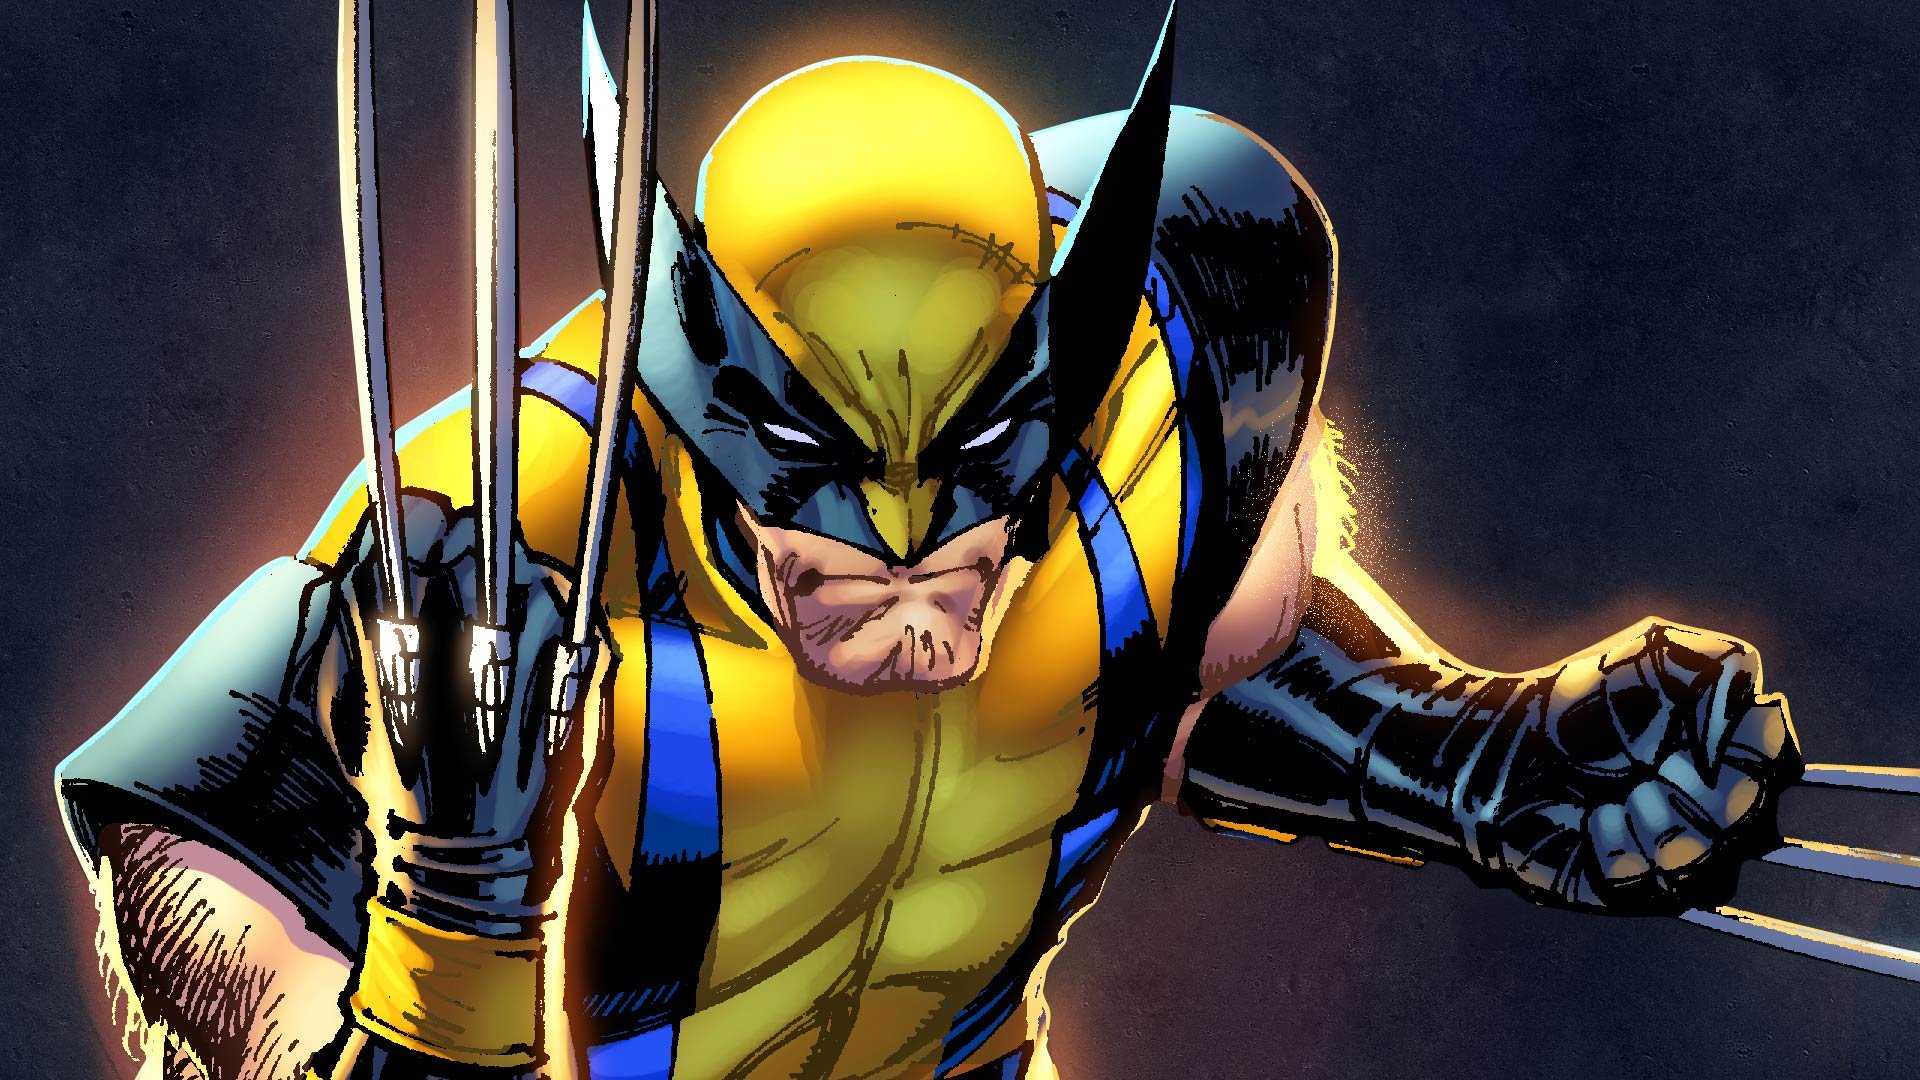 Free Download Wolverine Wallpaper Id 276385 Full Hd 1920x1080 For